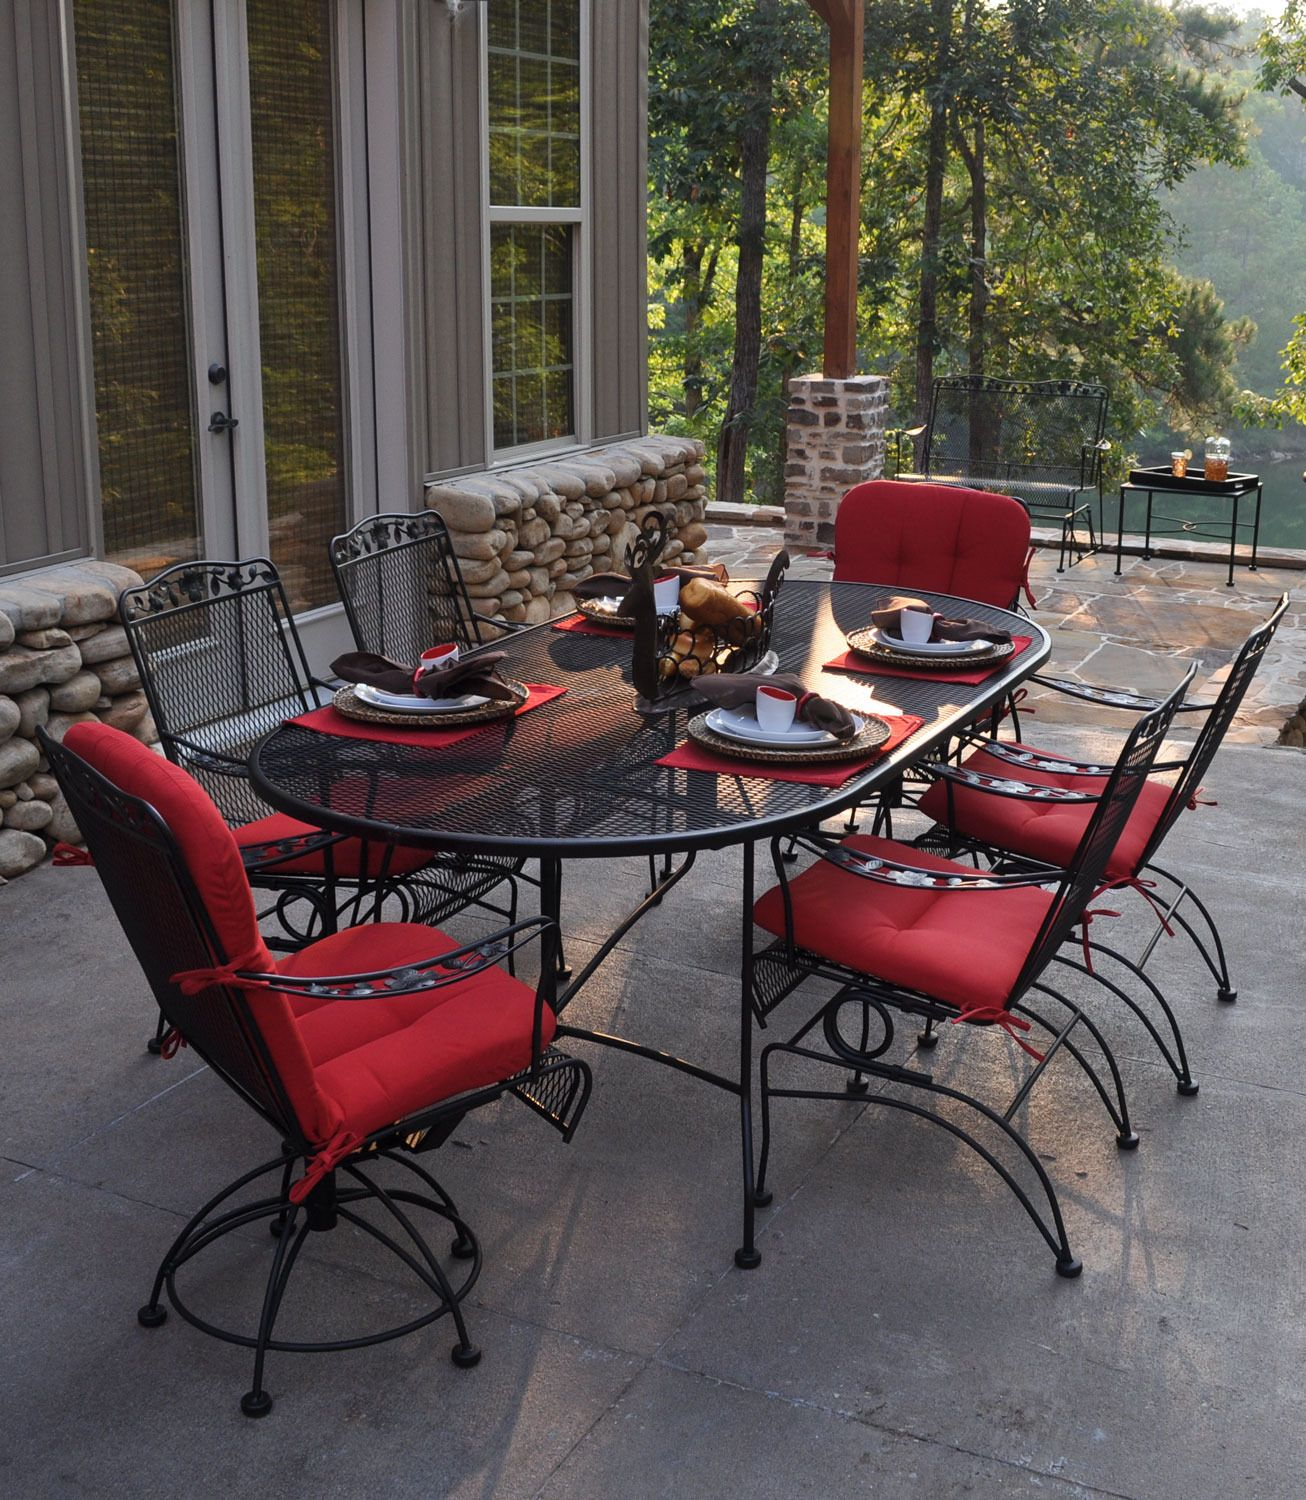 Oval Mesh Wrought Iron Outdoor Dining Table Wrought Iron Patio Furniture Patio Dining Set Outdoor Dining Table